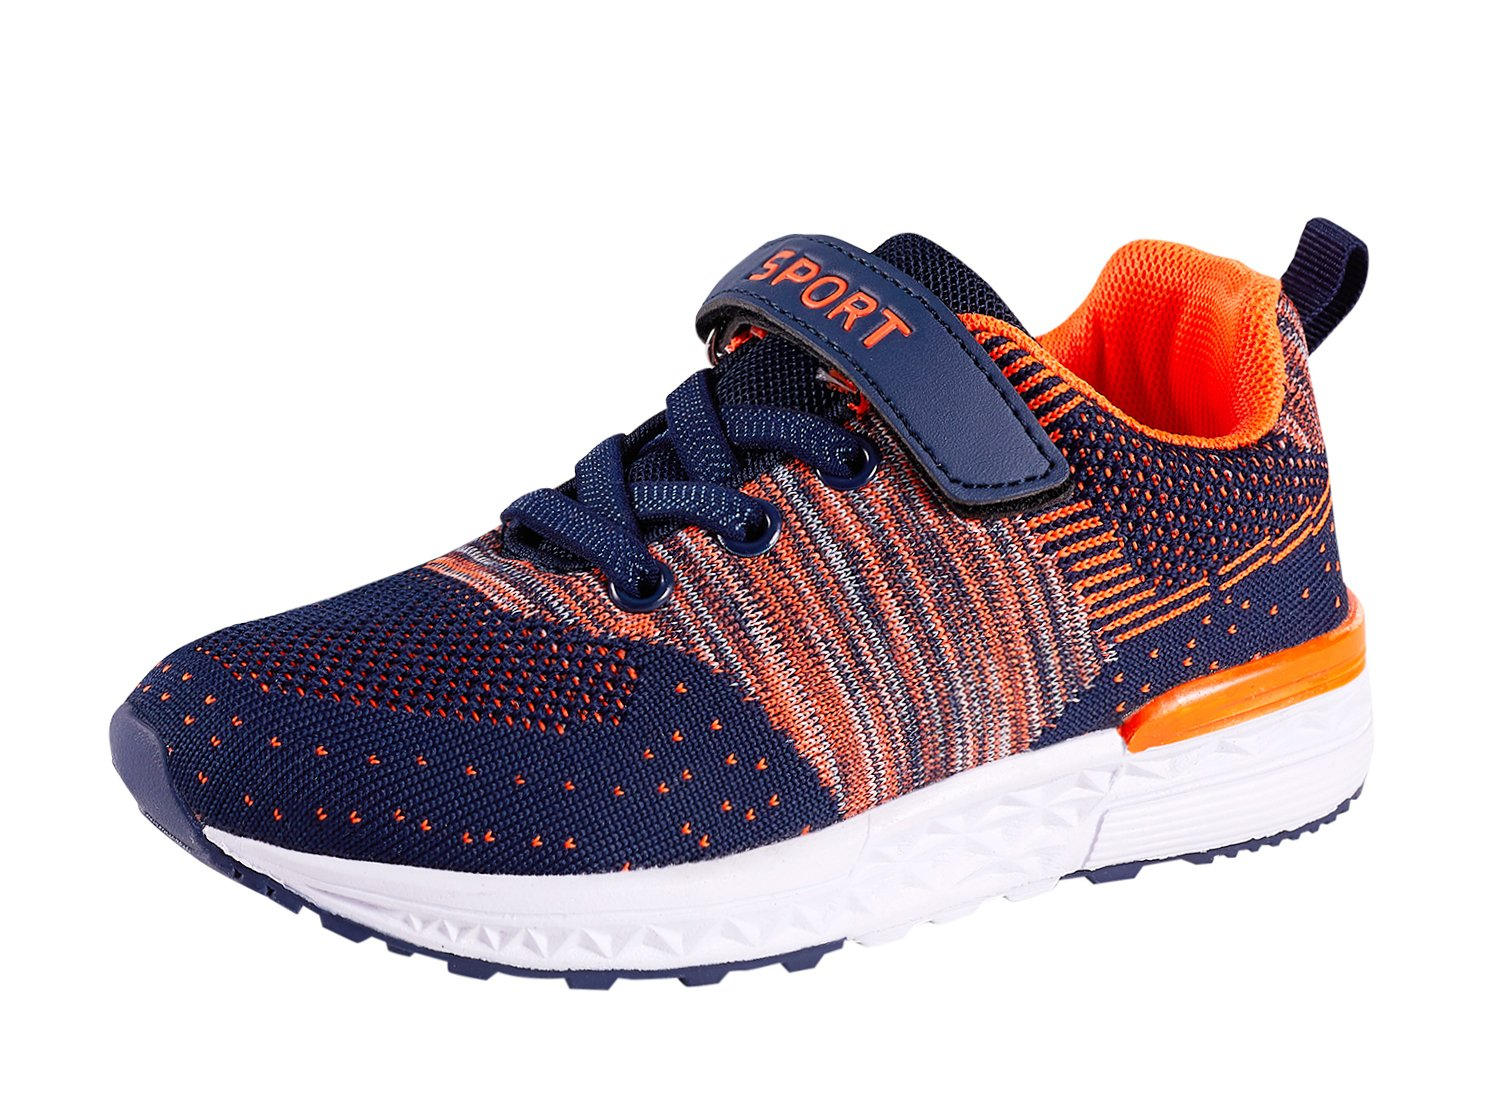 Casbeam Kids Lightweight Breathable Walking Running Tennis Shoes for Boys and Girls Orange 26